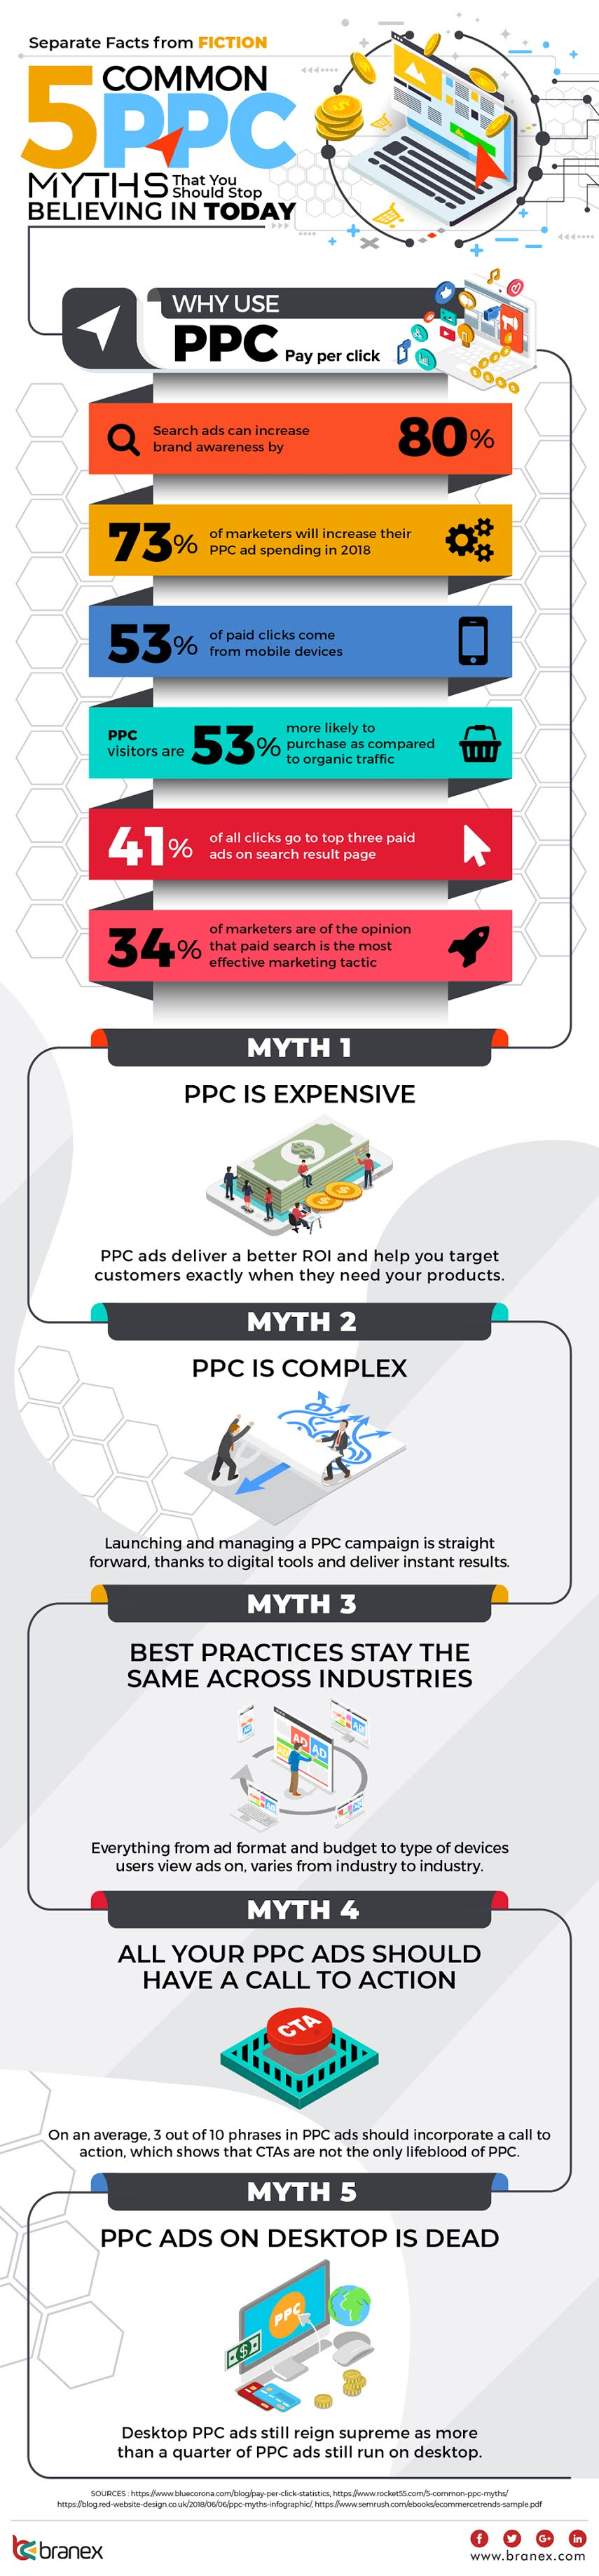 Separate Facts from Fiction: 5 Common PPC Myths That You Should Stop Believing In Today #infographic